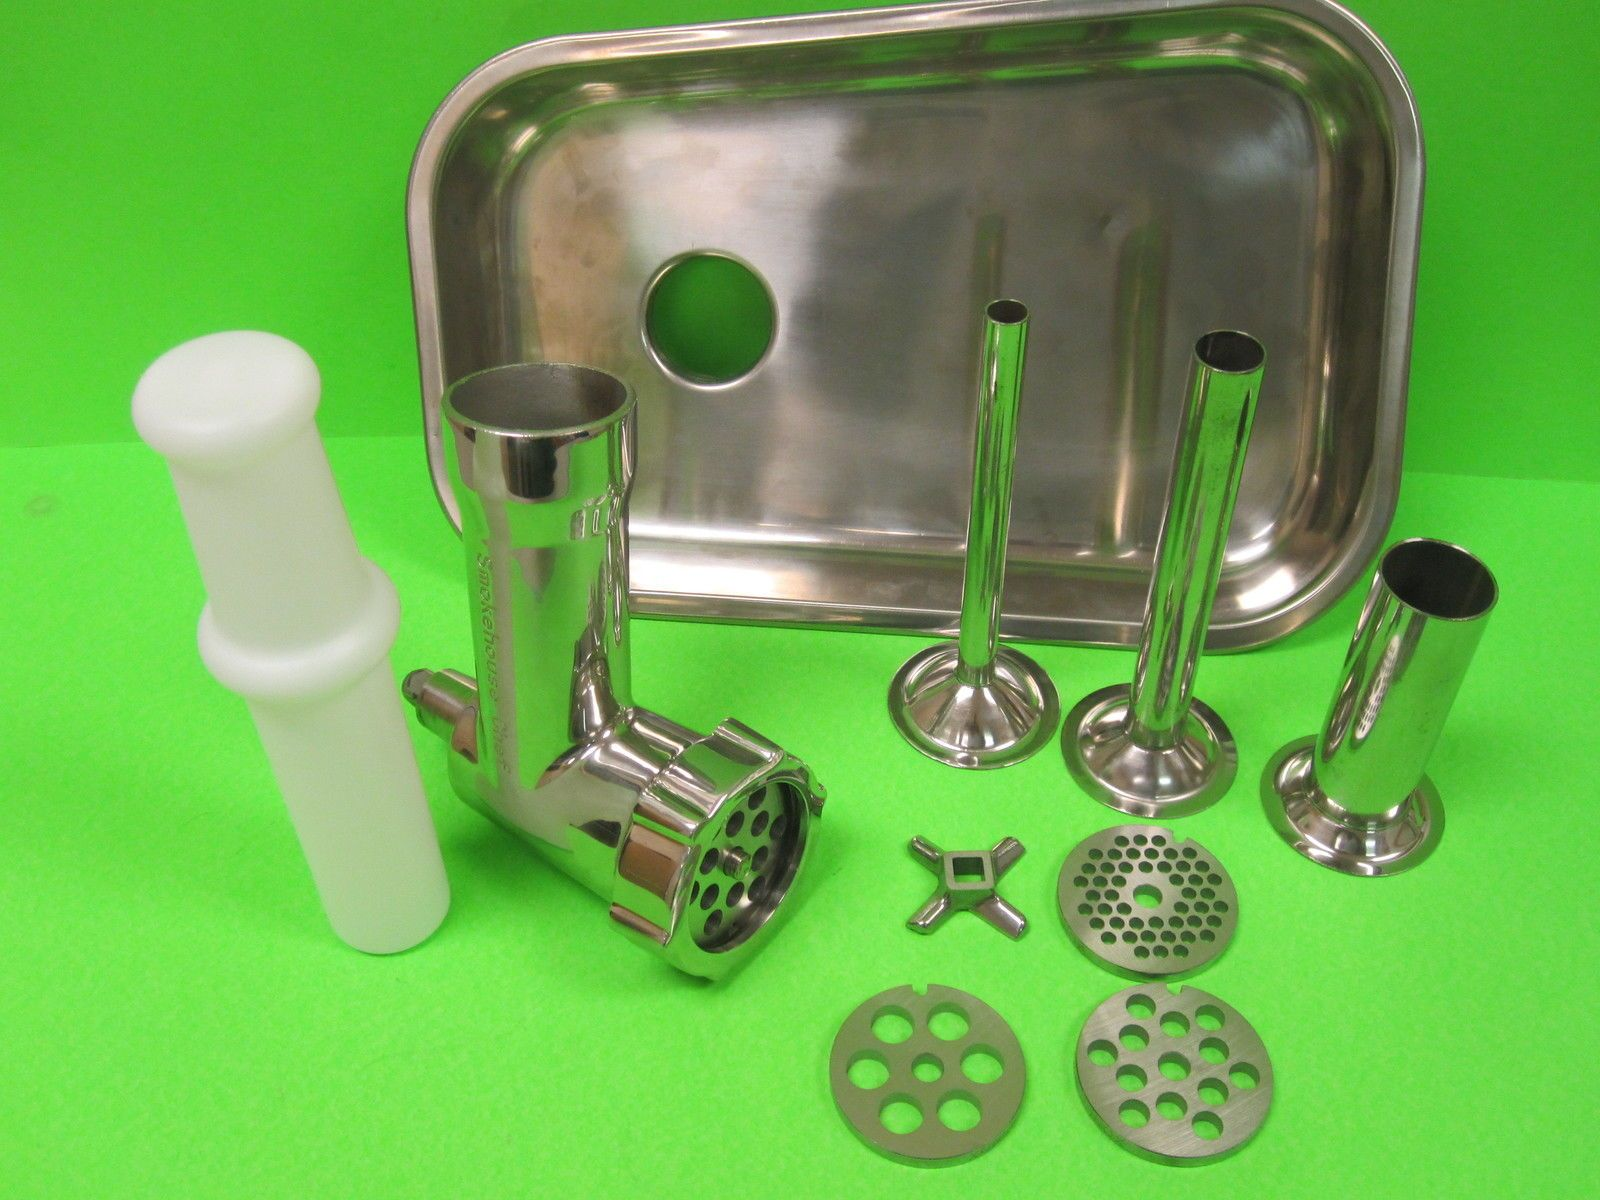 Details about stainless steel metal meat grinder food